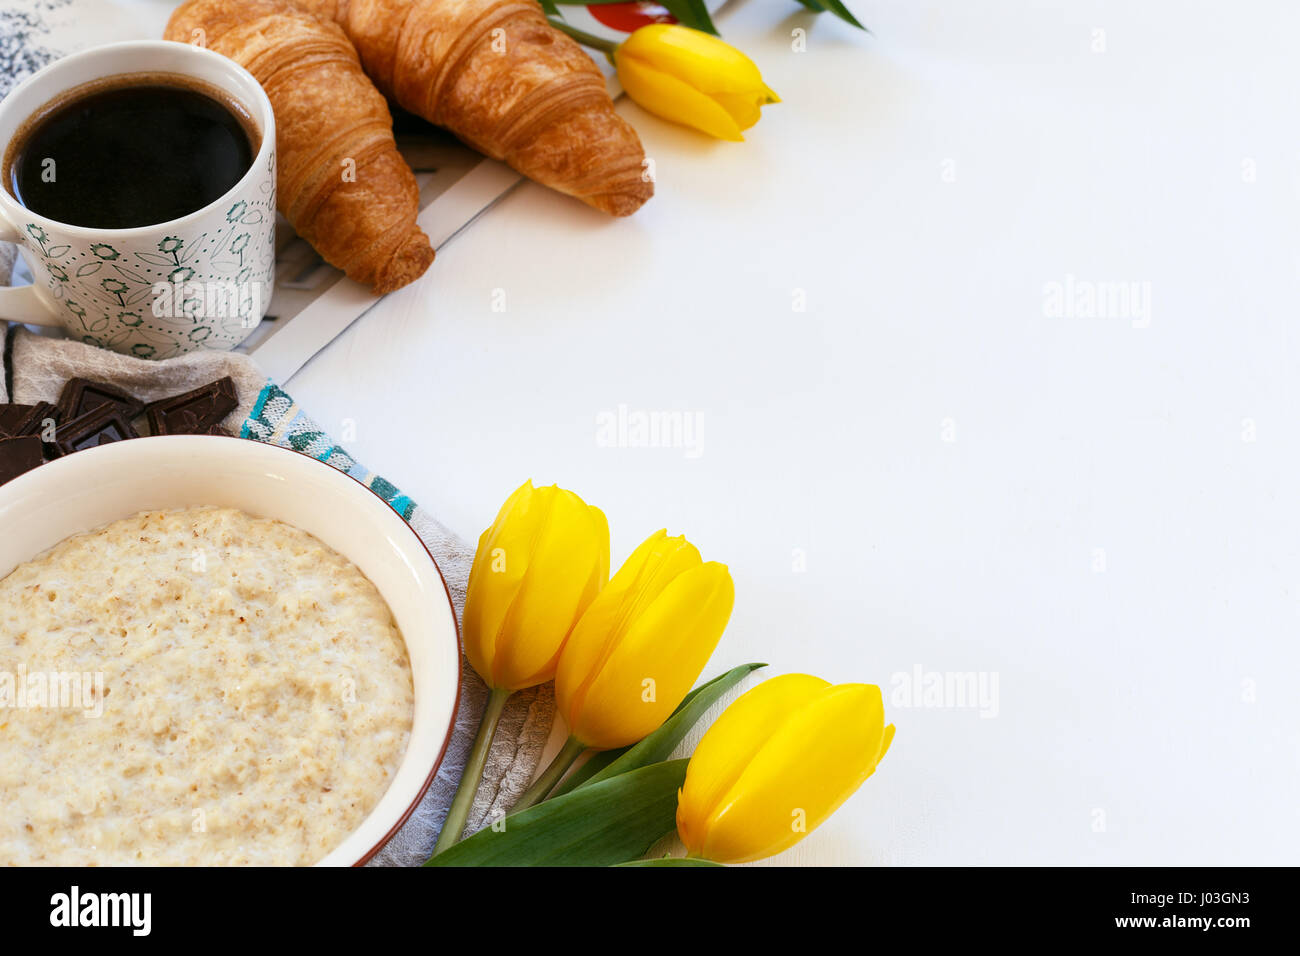 Healthy breakfast contained of different ingredients on a white background Stock Photo